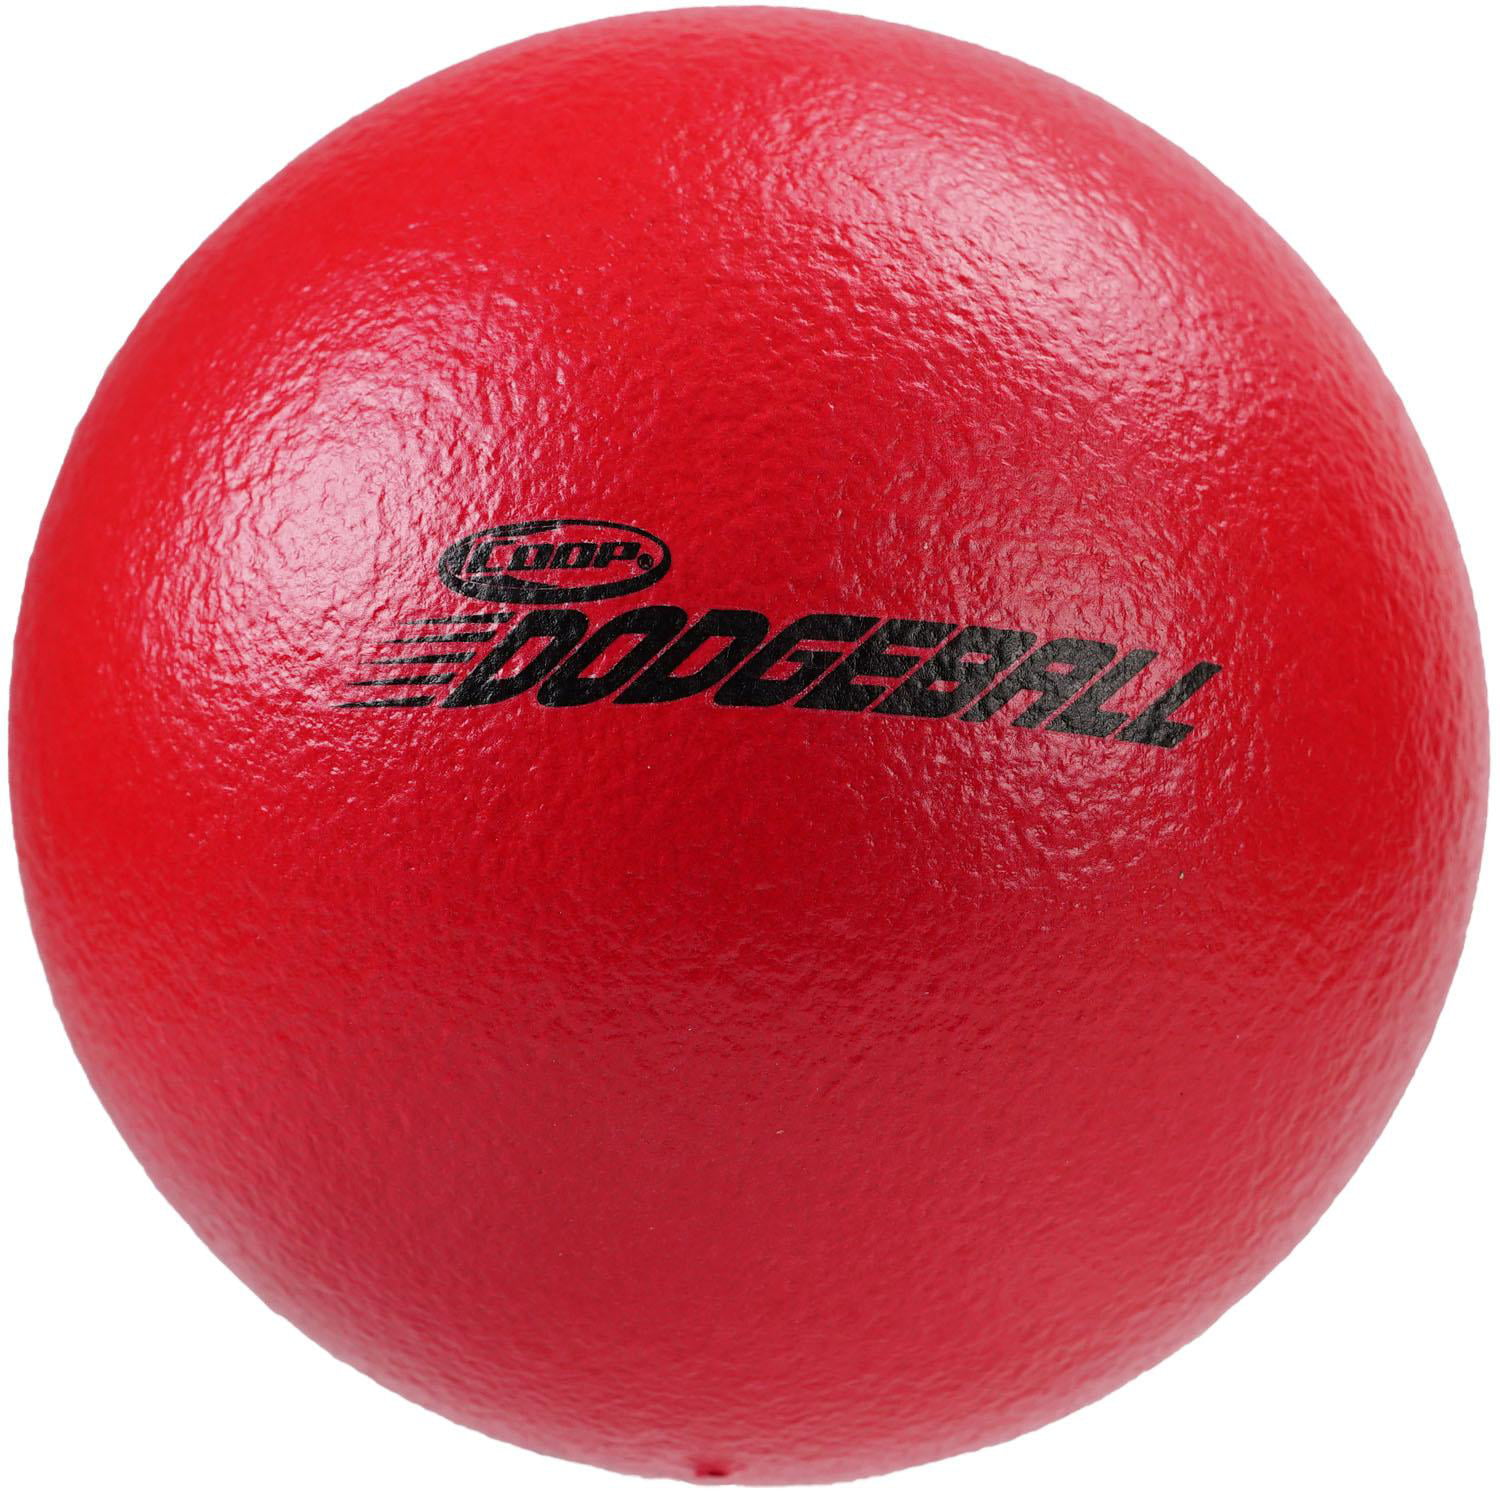 6 Quot Solid Red Textured Sting Free Outdoor Yard Sport Dodgeball